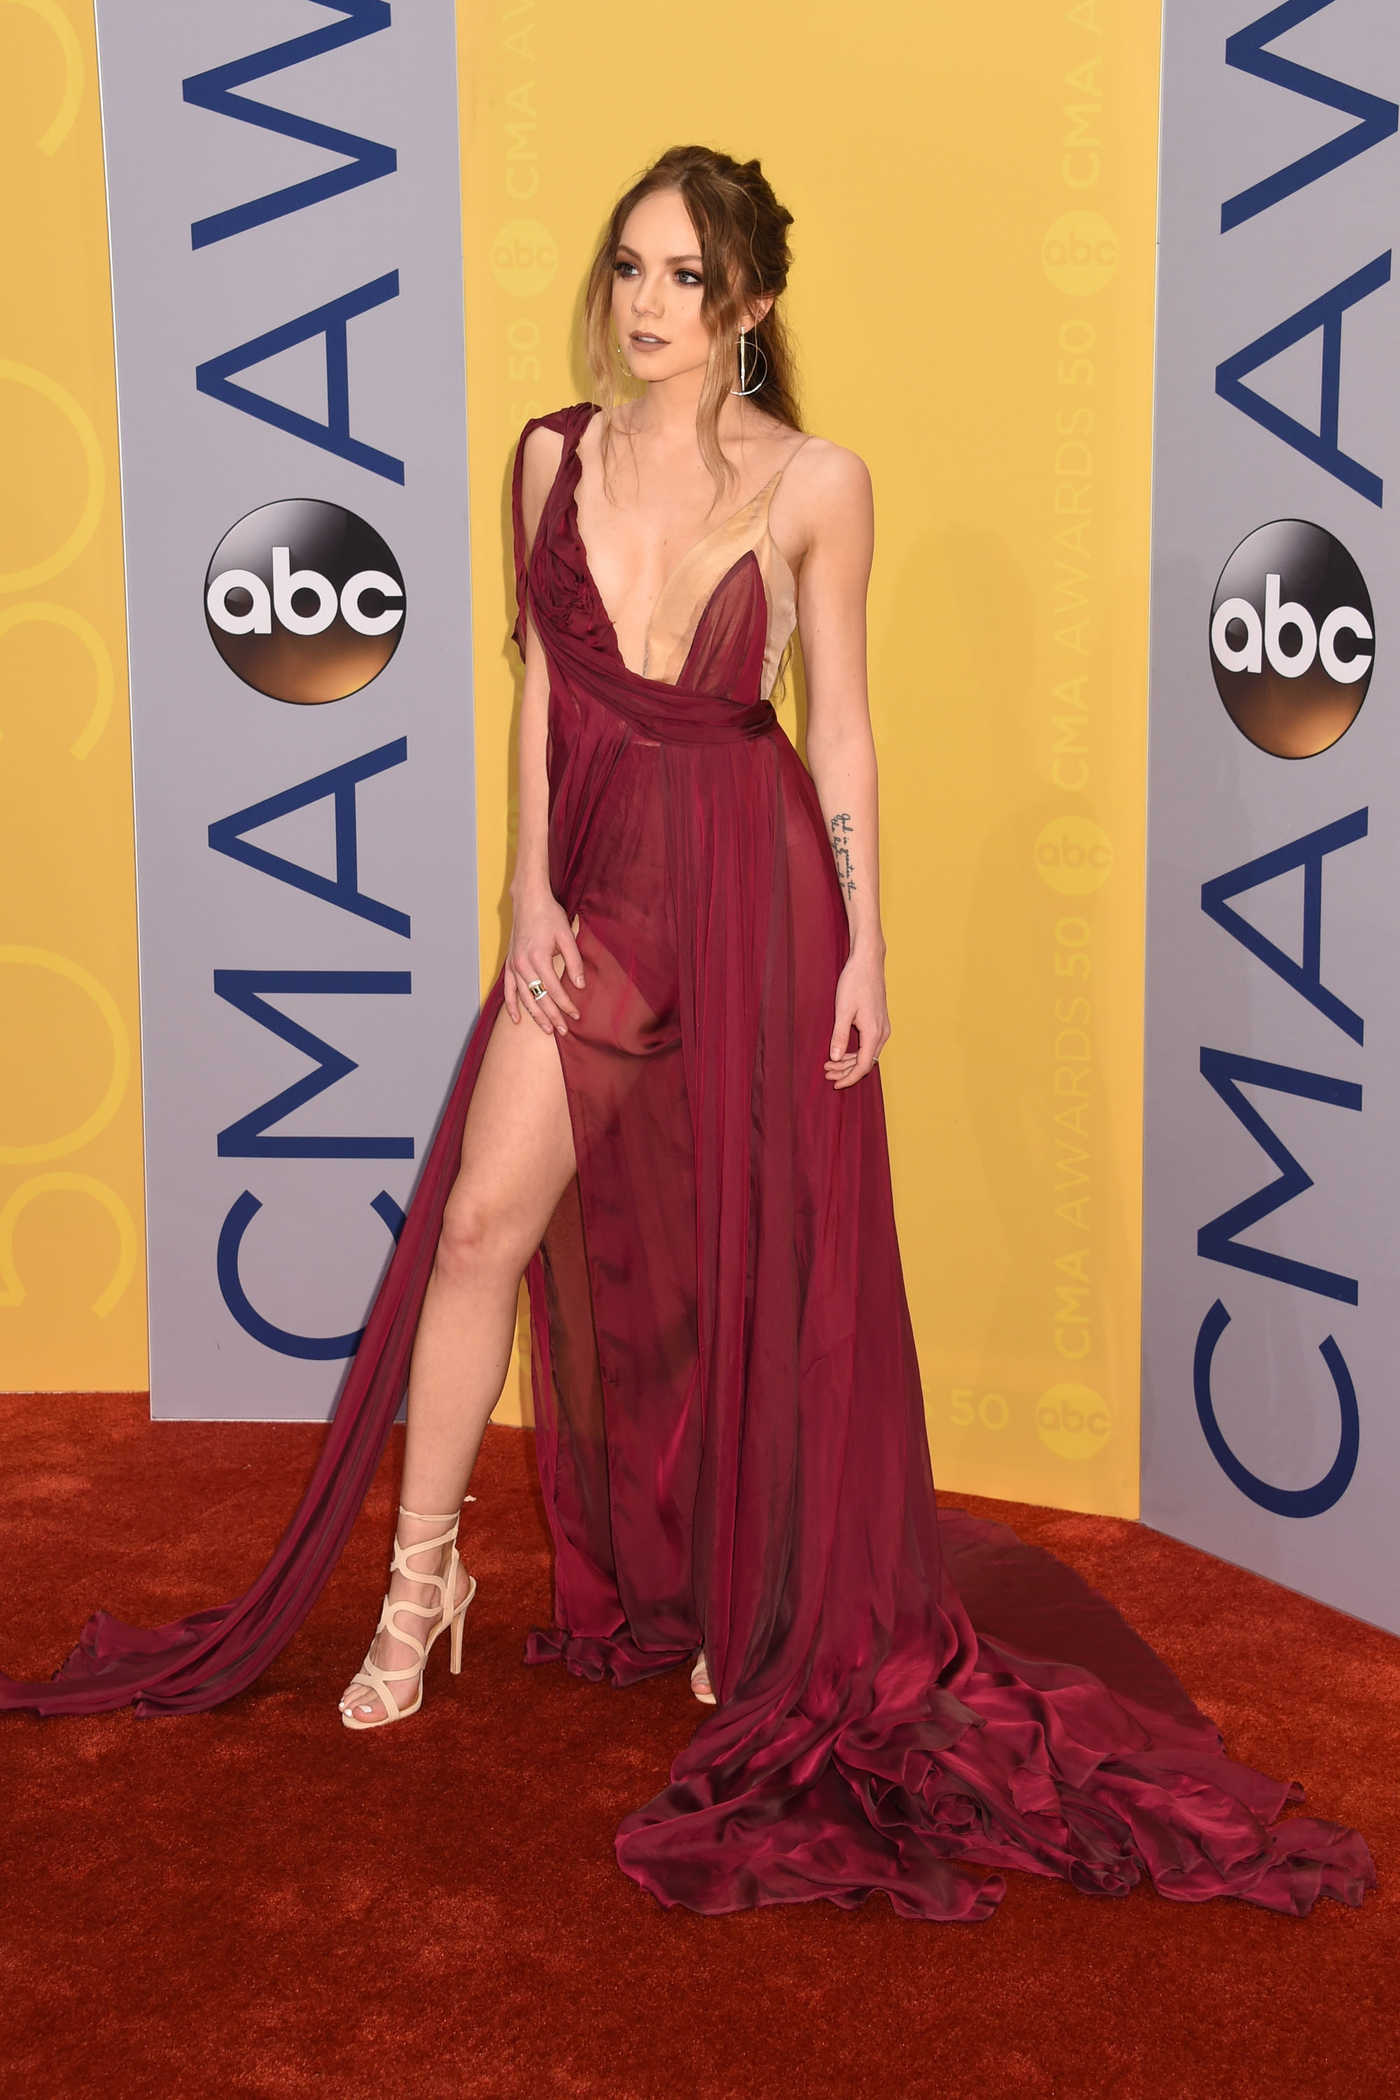 Danielle Bradbery at the 50th Annual CMA Awards at Music City Center in Nashville 11/02/2016